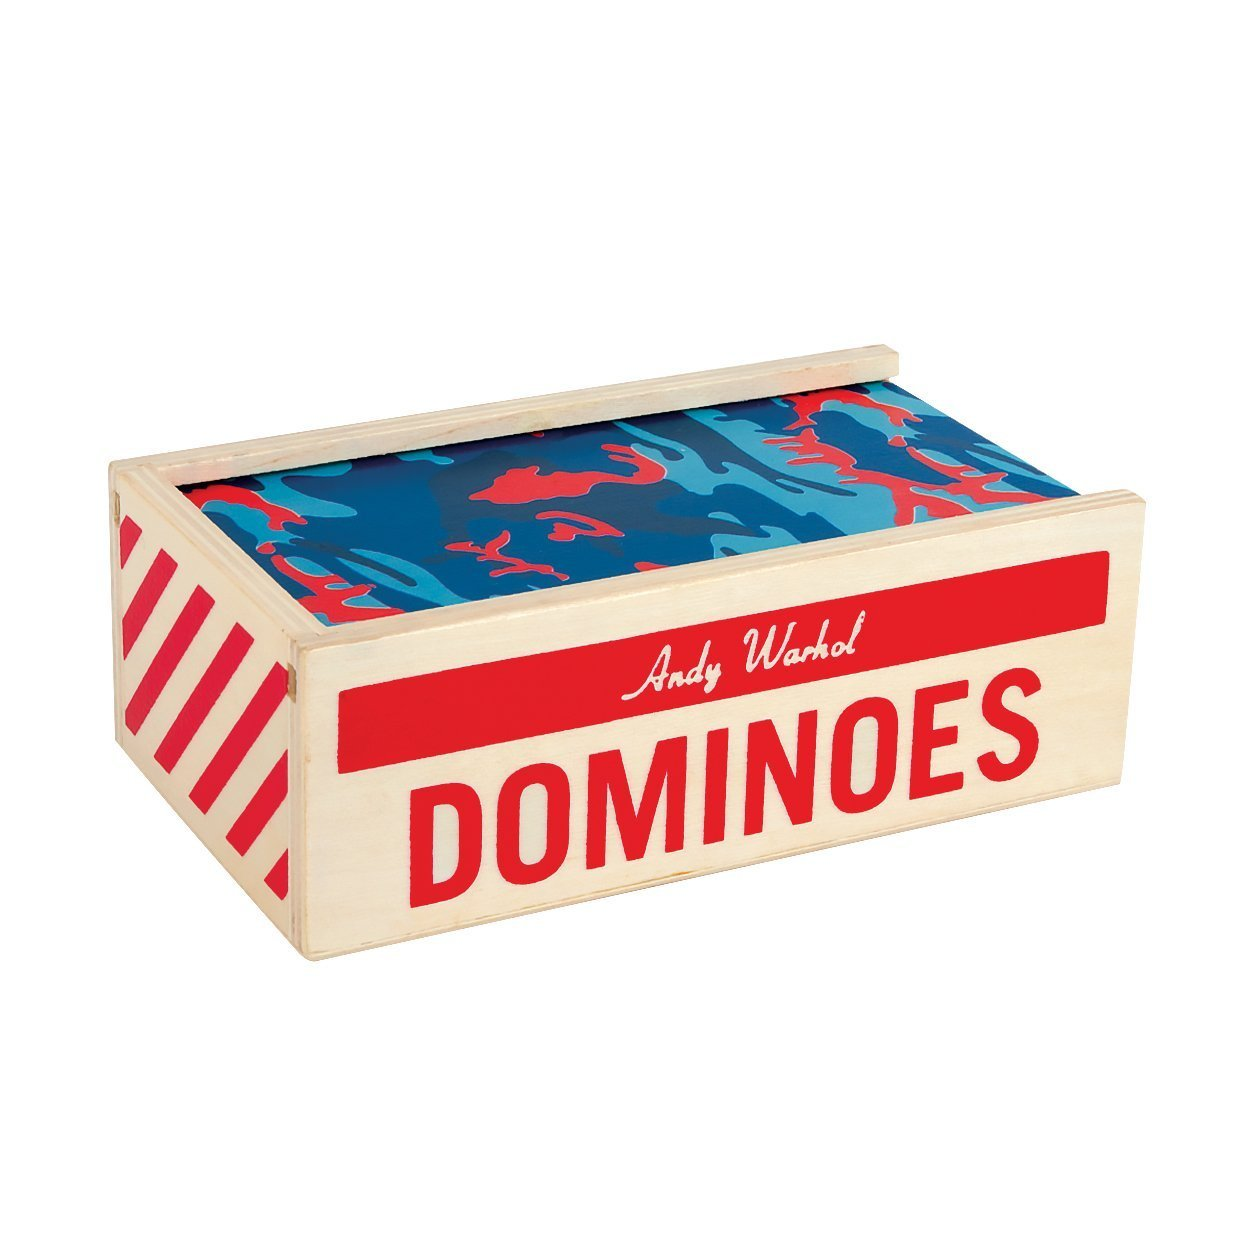 Andy Warhol: Wooden Dominoes image